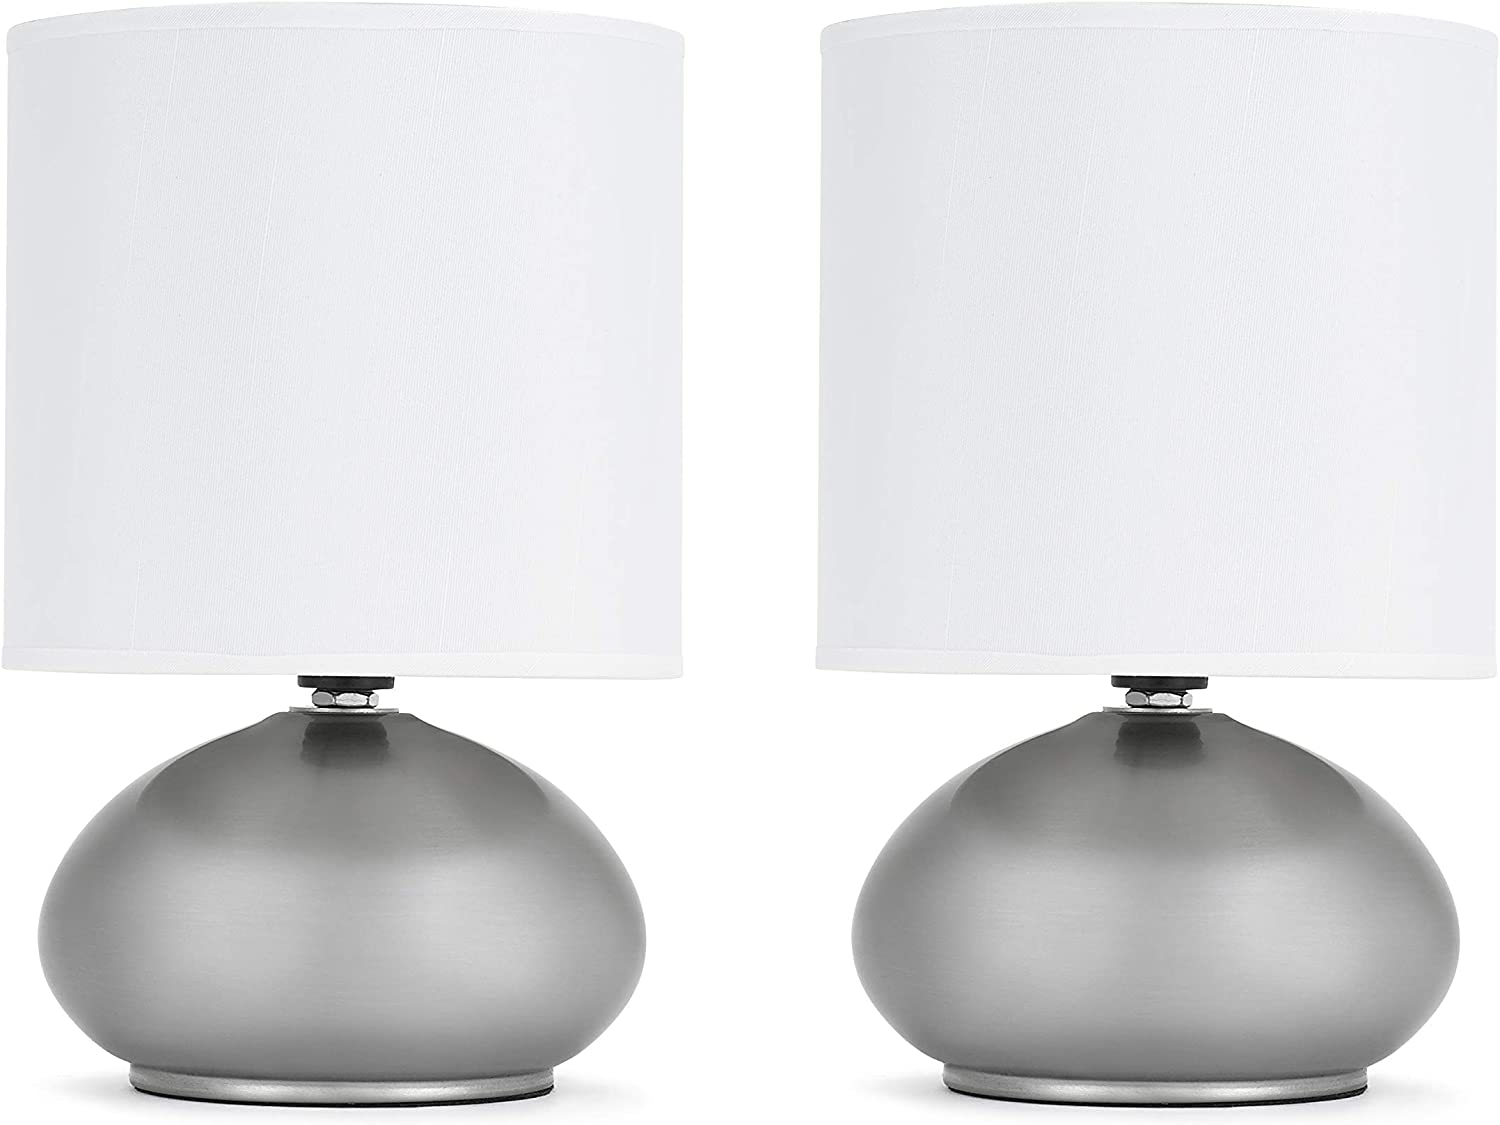 Catalina Lighting 18581 000 Transitional 2 Pack Matching Small Touch Table Lamp Set 9 25 Classic Brushed Nickel 2 Count